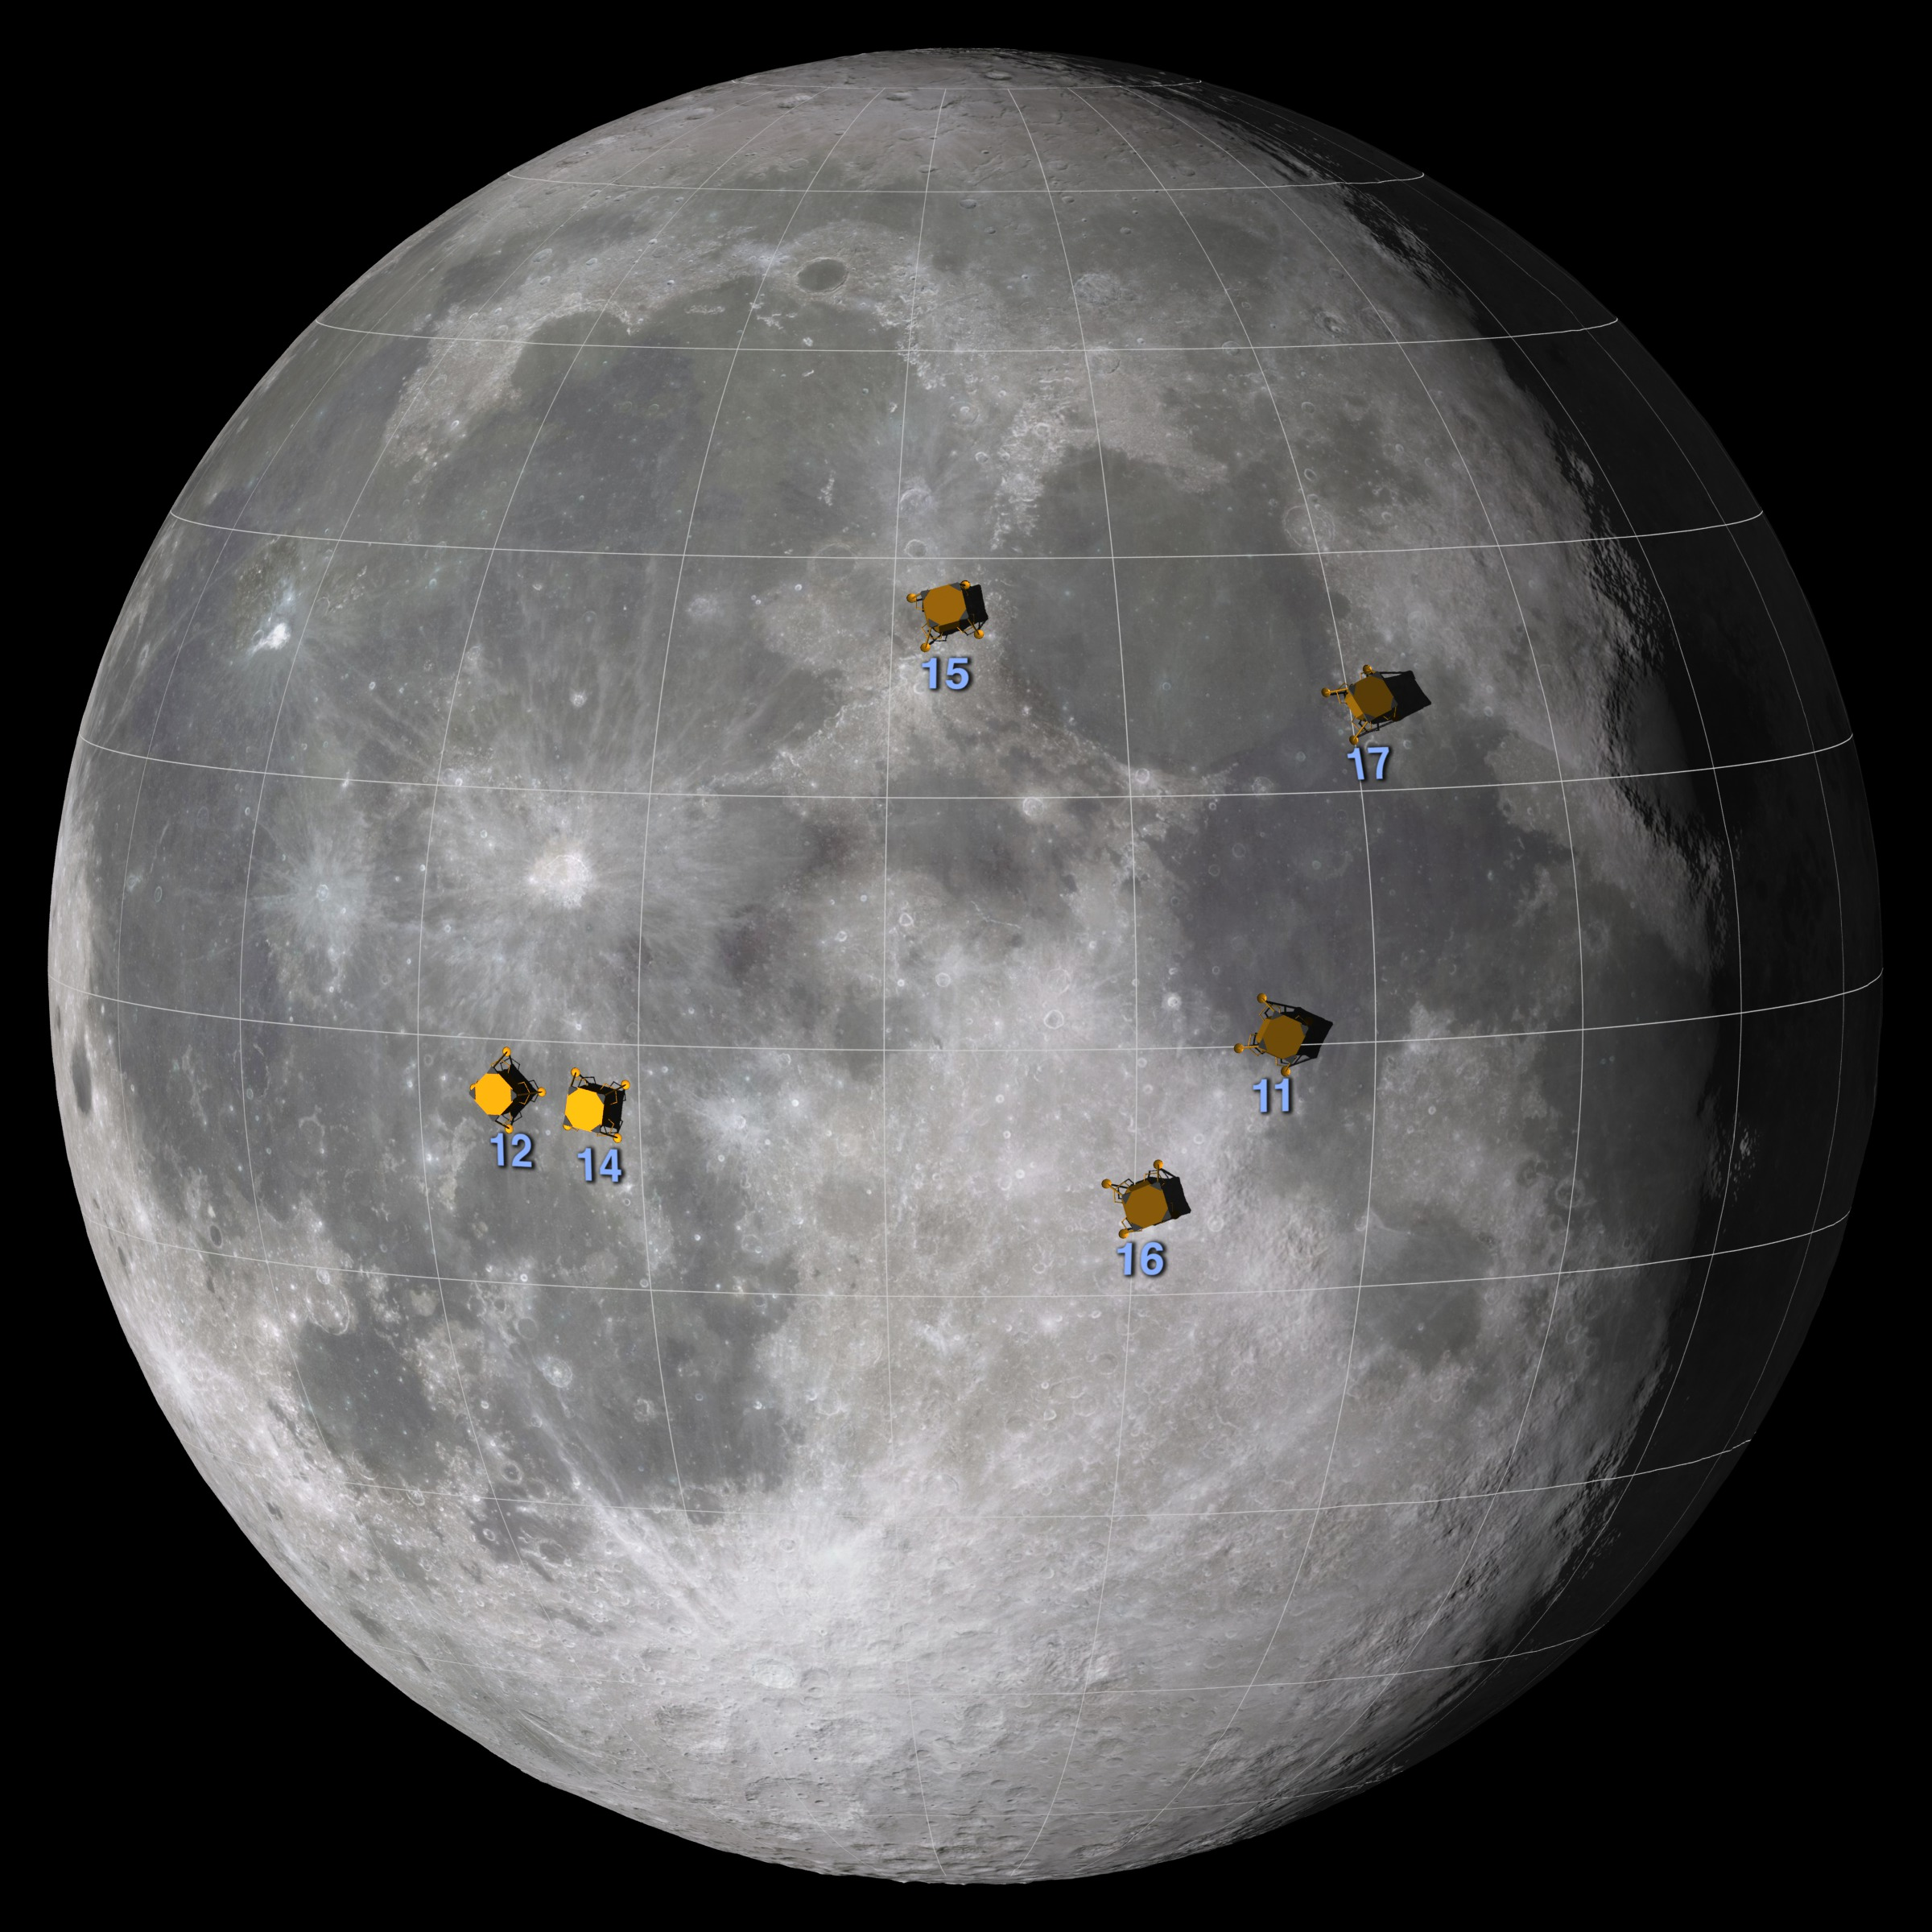 Graphic showing Apollo landing sites on the nearside of the Moon.